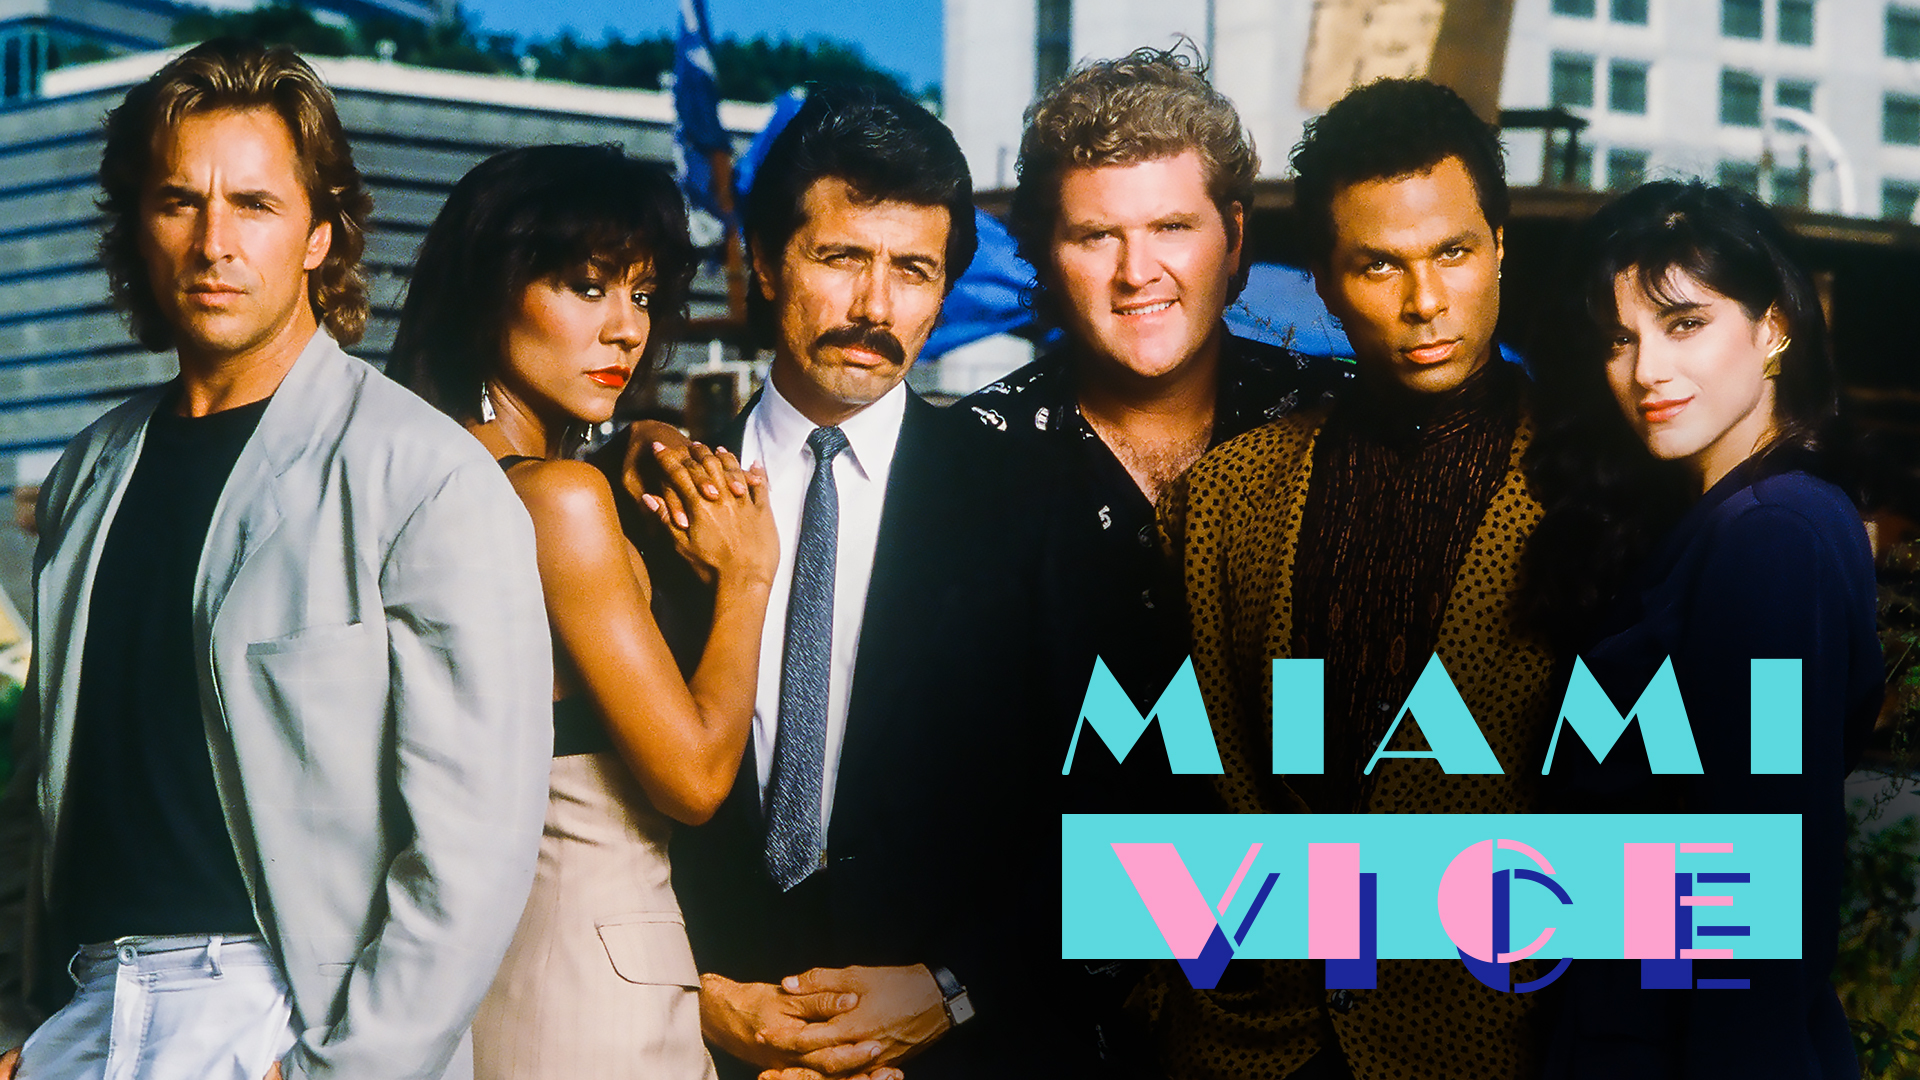 miami vice stream